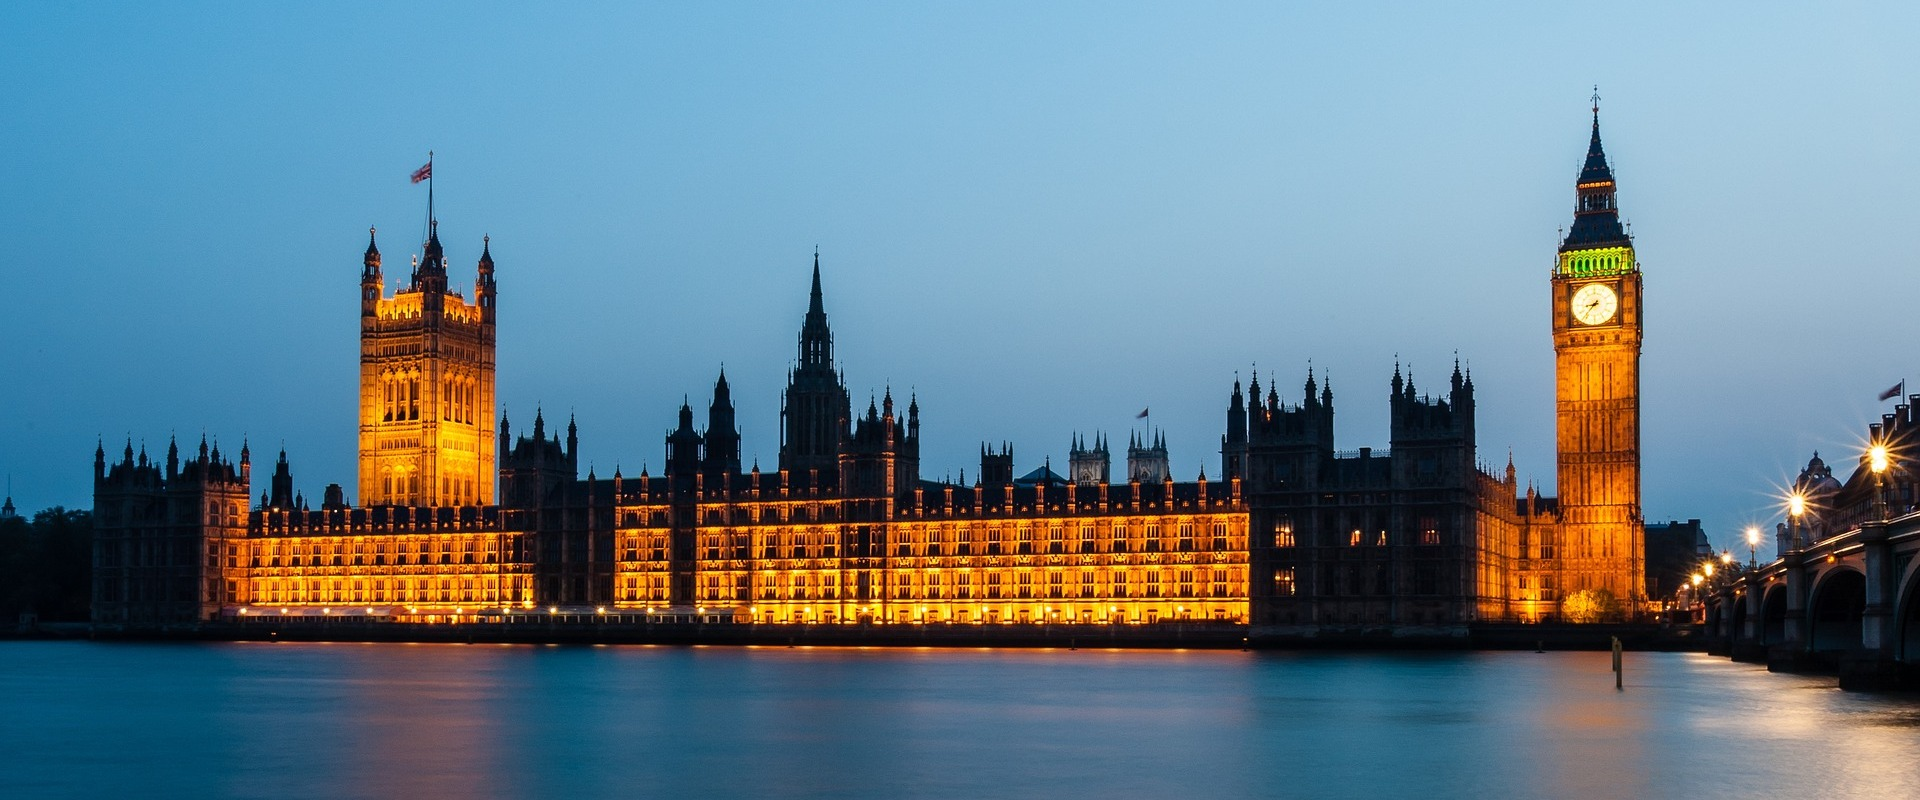 houses-of-parliament-1920x800